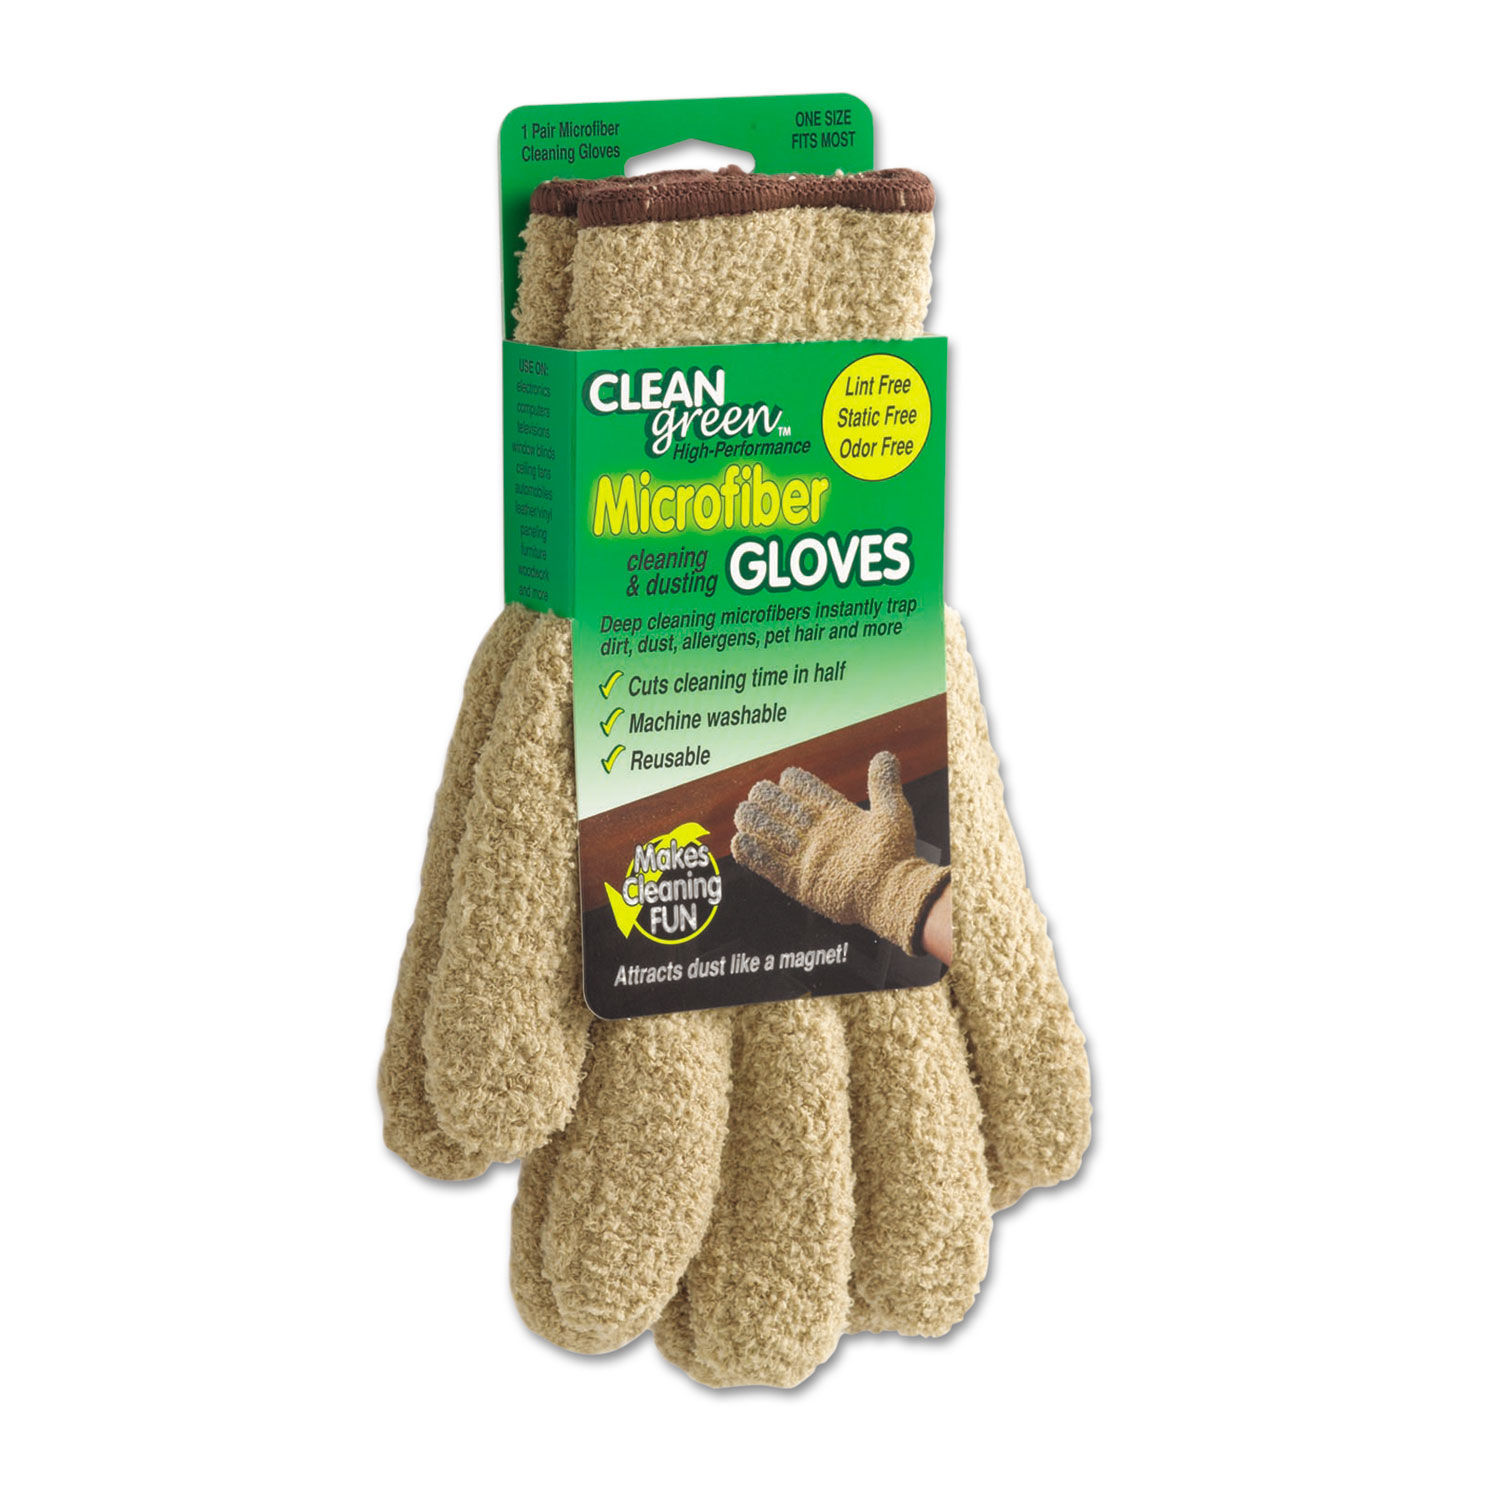 Cool Cleangreen Microfiber Cleaning And Dusting Gloves Pair Onthecornerstone Fun Painted Chair Ideas Images Onthecornerstoneorg